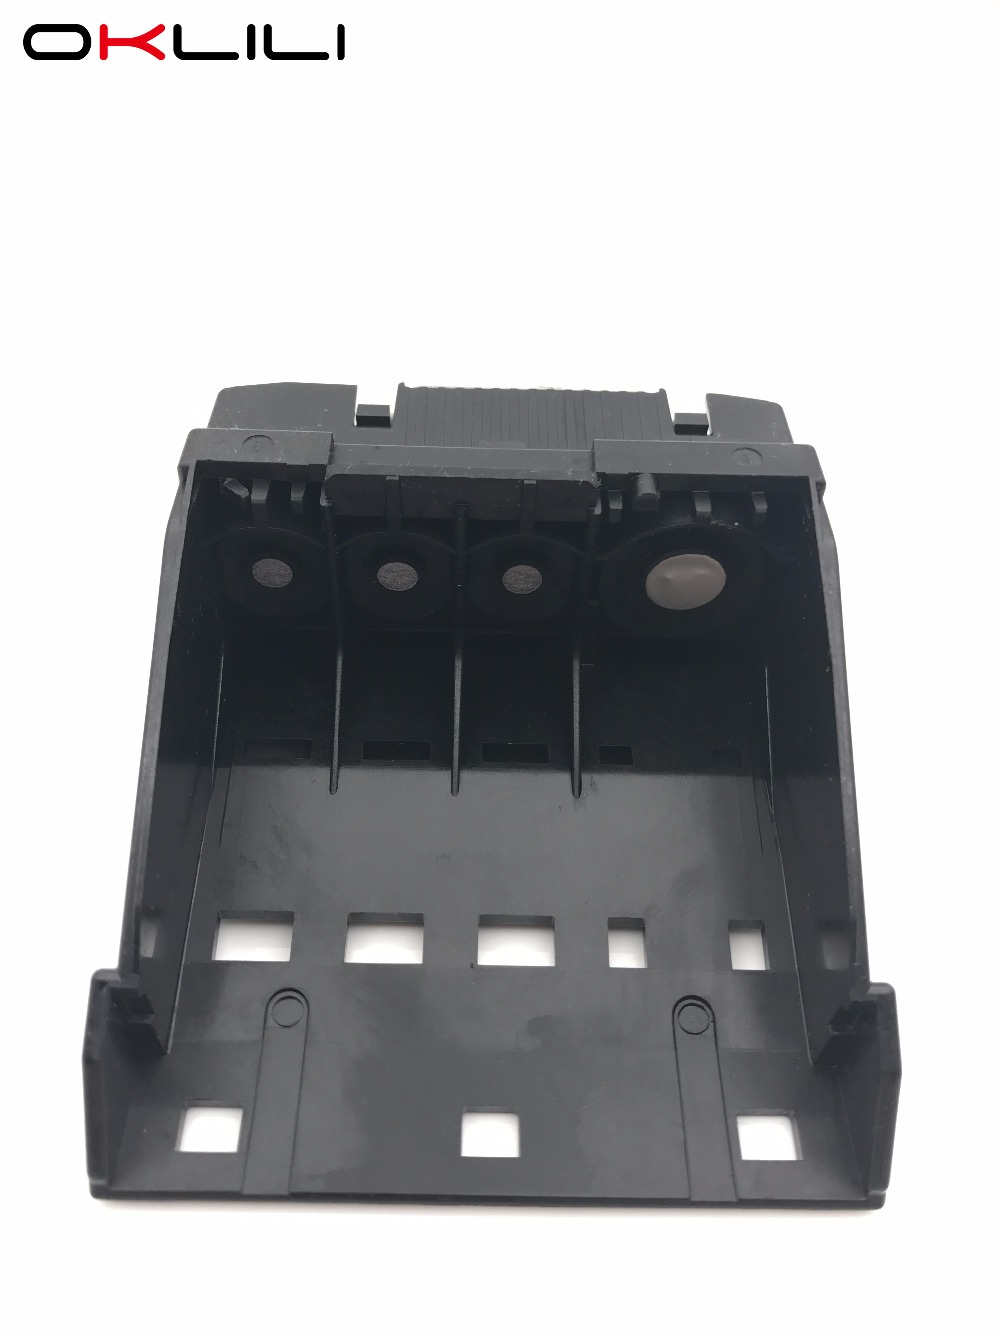 OKLILI ORIGINAL QY6-0045 QY6-0045-000 Printhead Print Head Printer Head for Canon i550 PIXUS 550i qy6 0069 qy6 0069 qy60069 qy6 0069 000 printhead print head printer head remanufactured for canon mini260 mini320